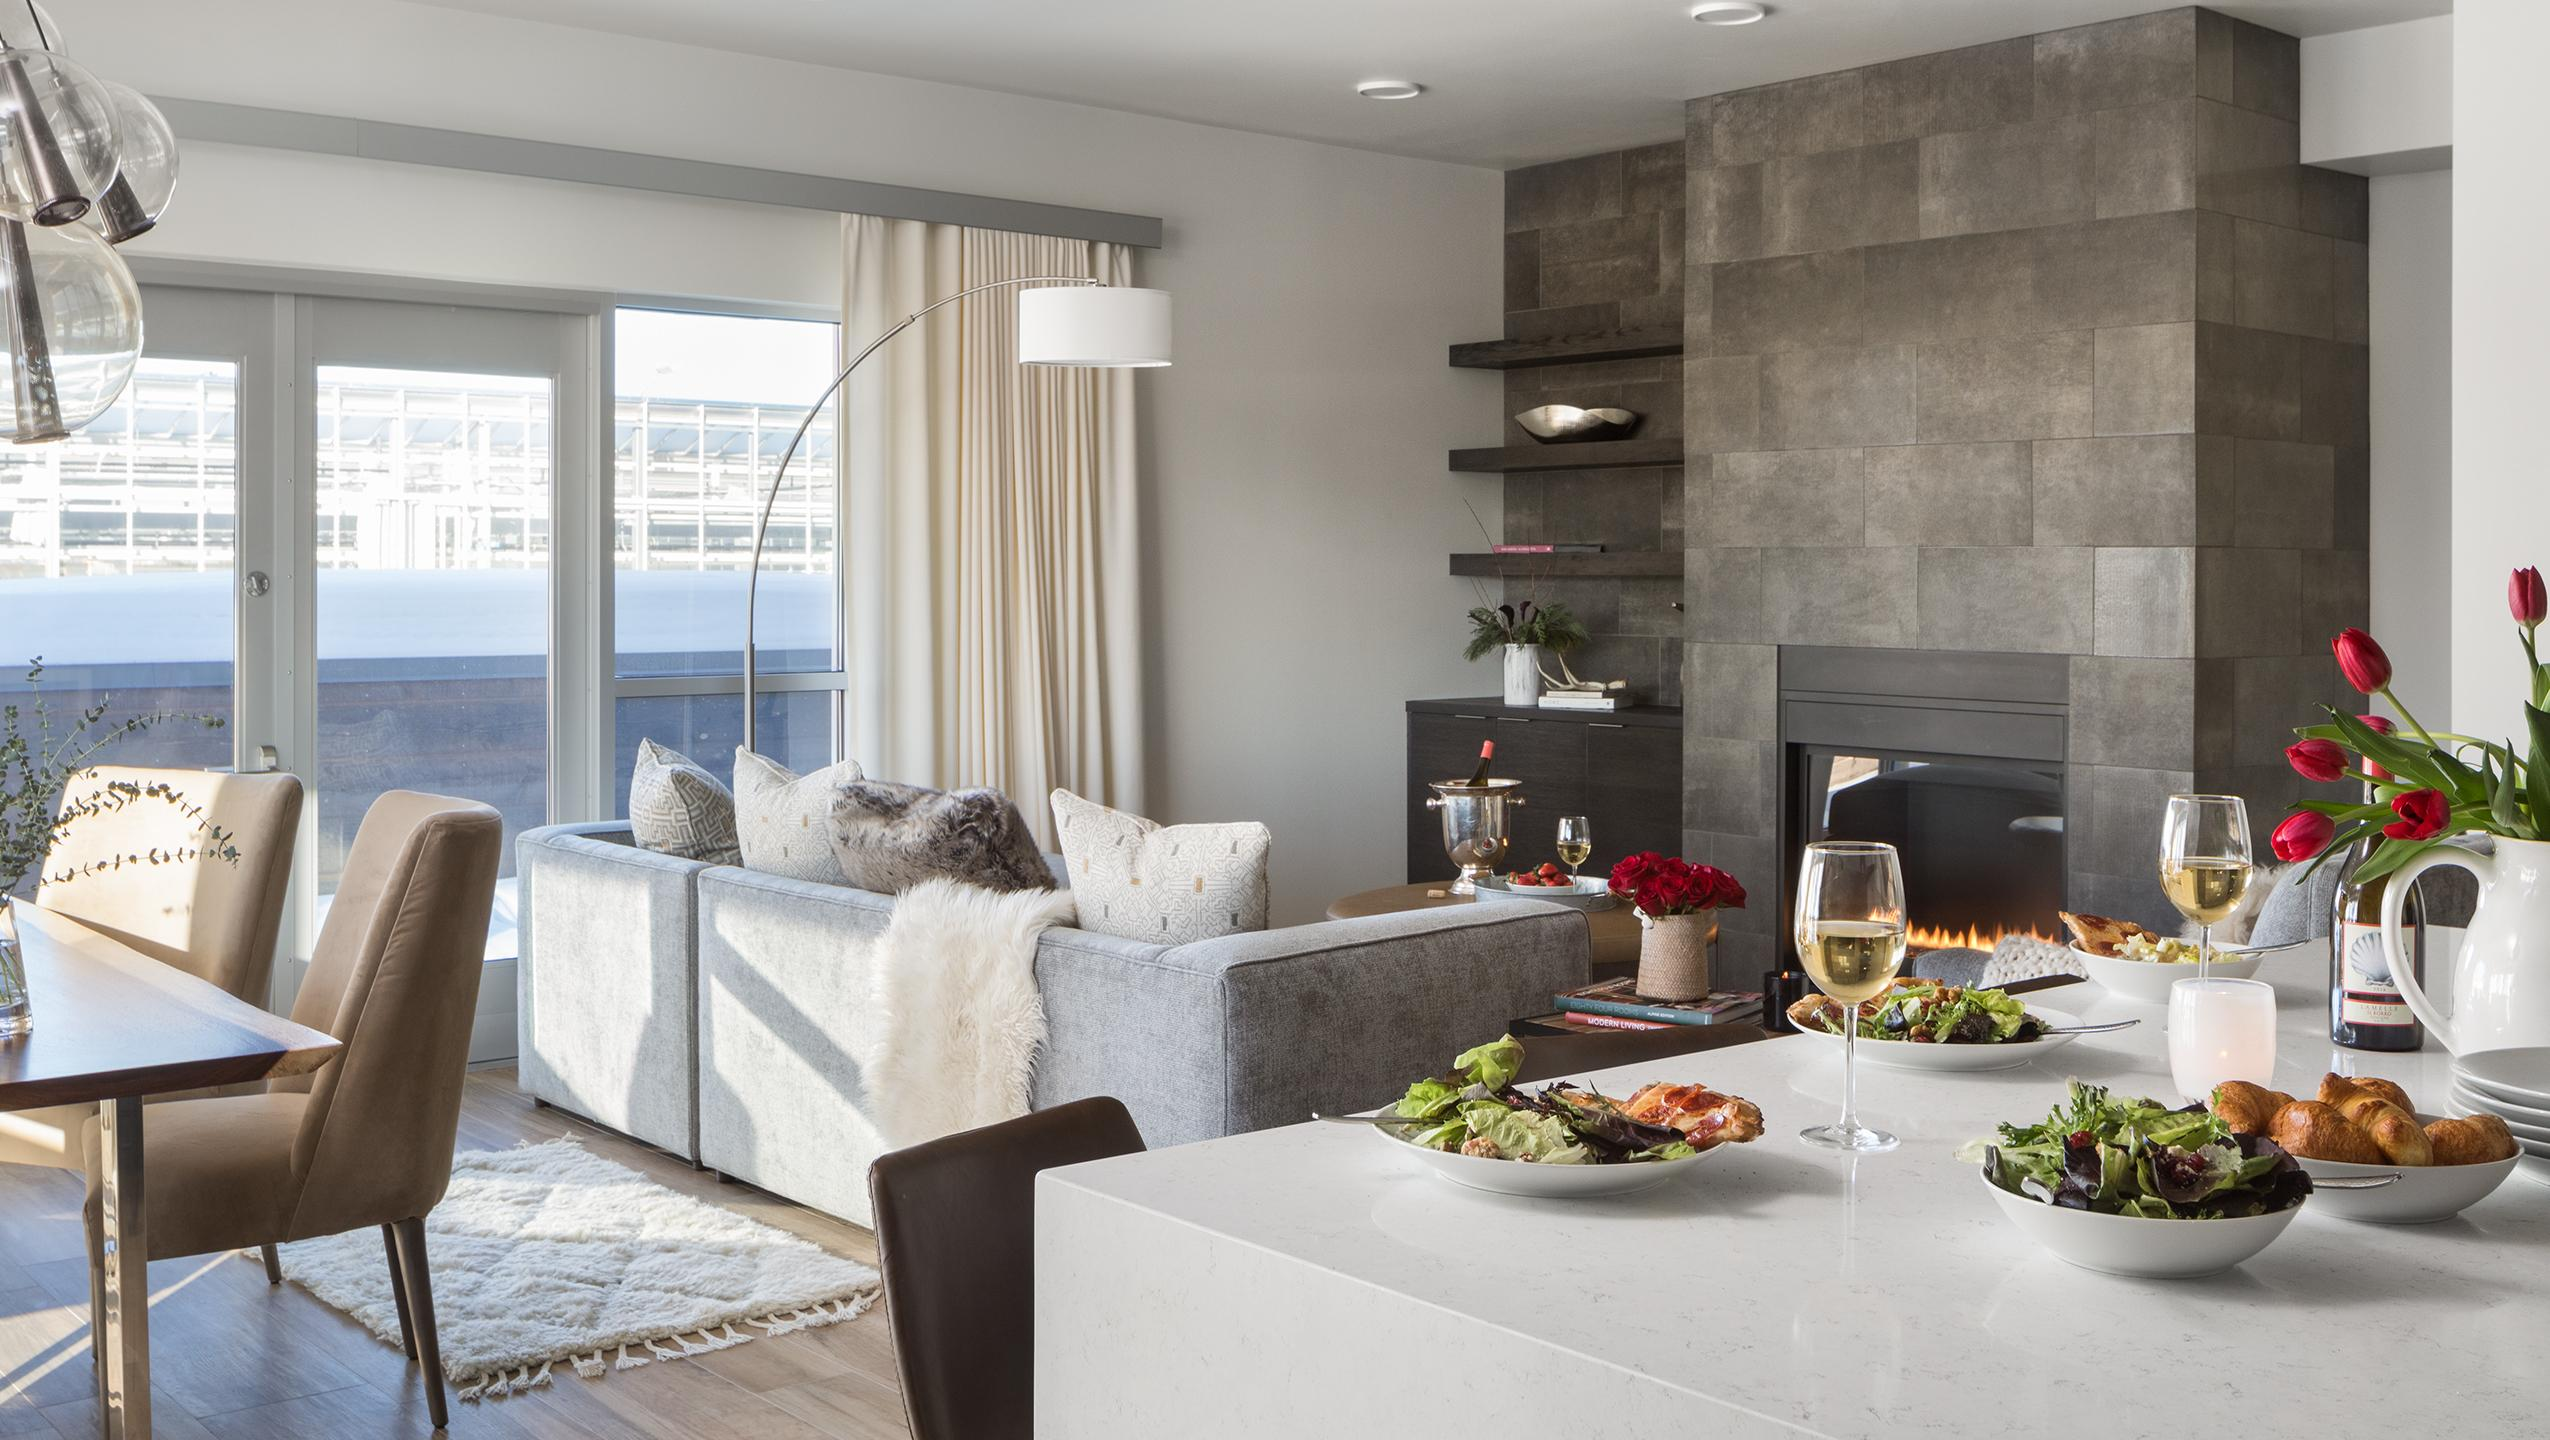 Modern Penthouse in Downtown Jackson, Urban Living at its Best